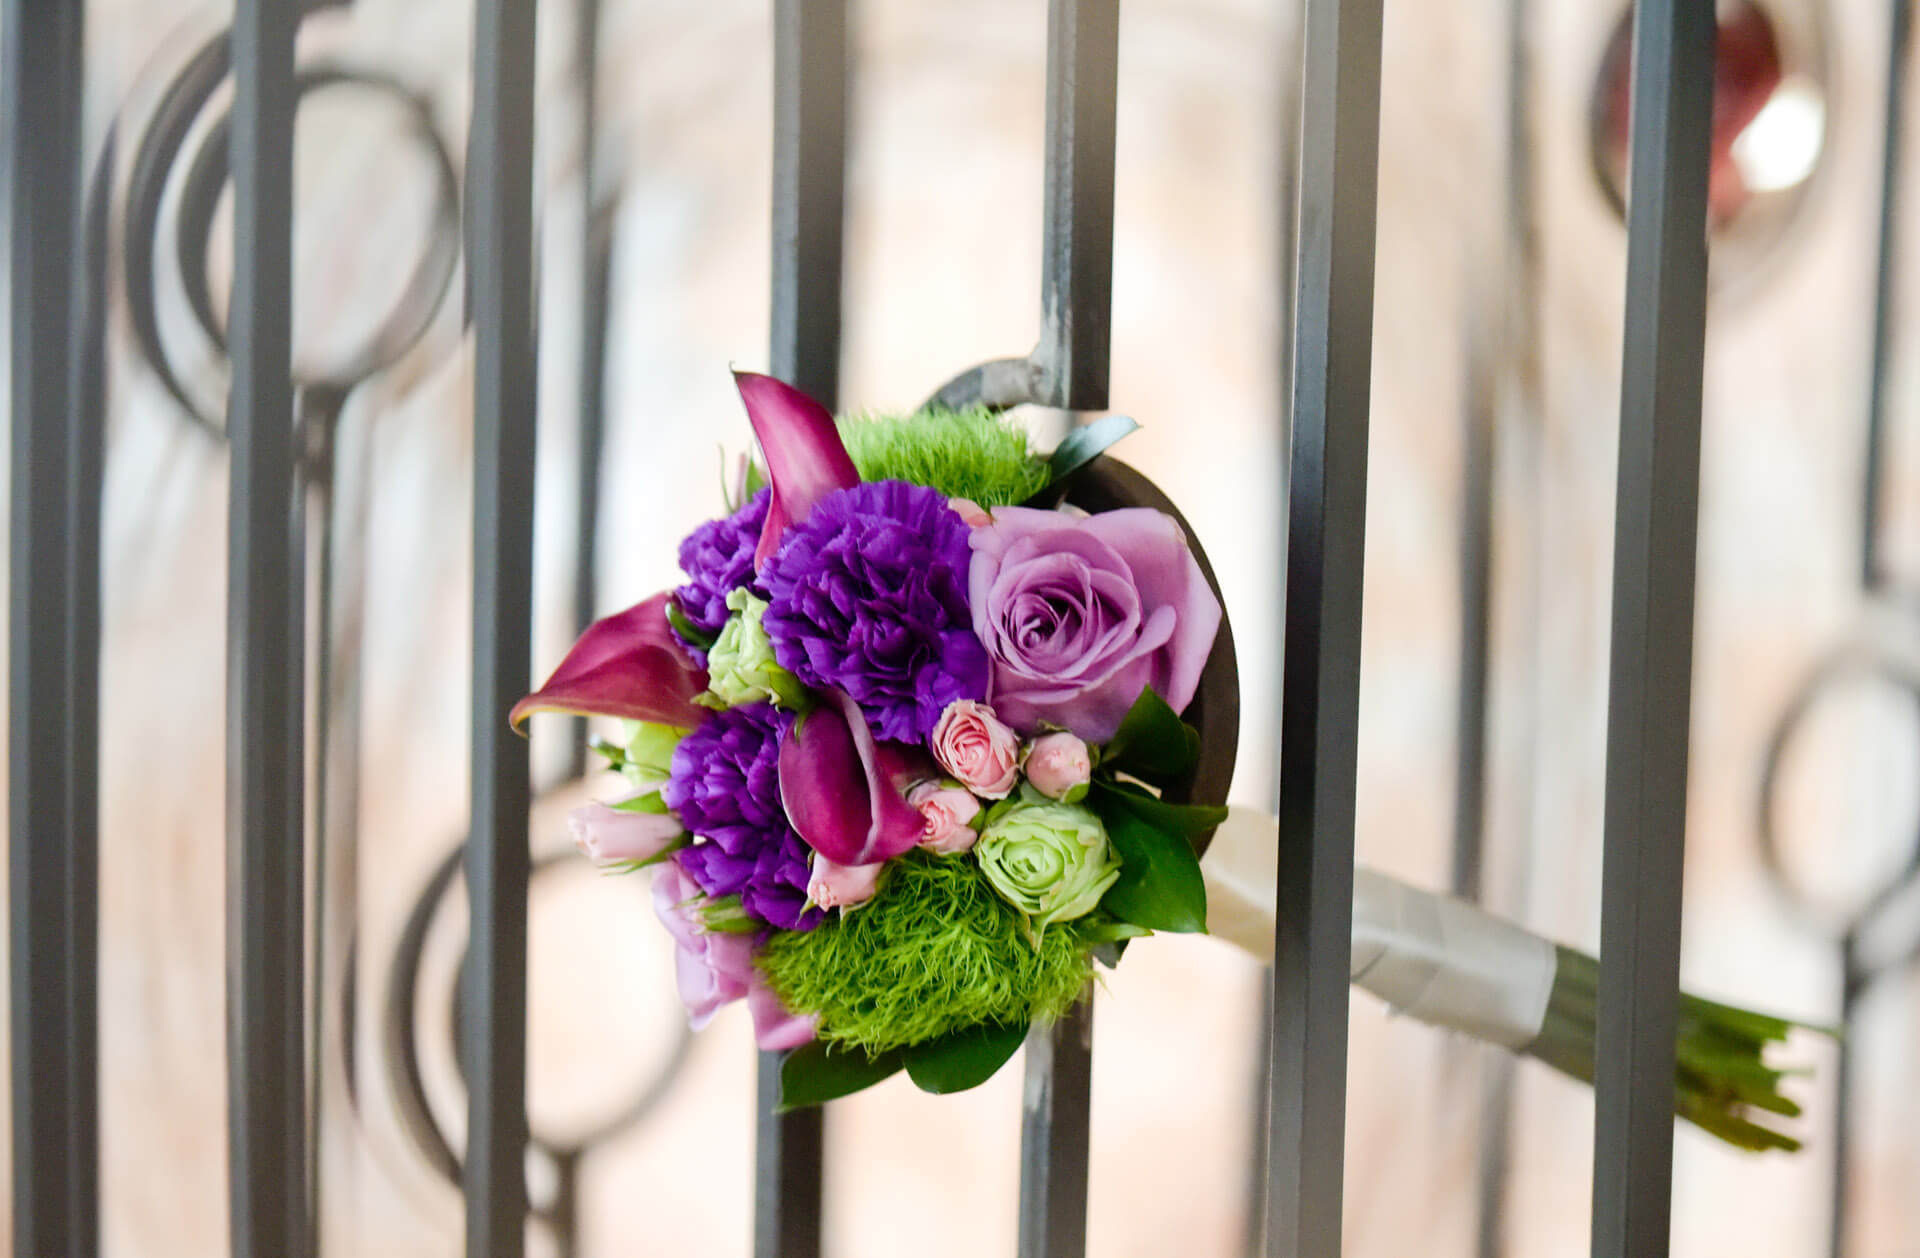 Epic Wedding portrait of the bride's bouquet sticking out of custom iron works at the Crofoot in Pontiac, Michigan wedding